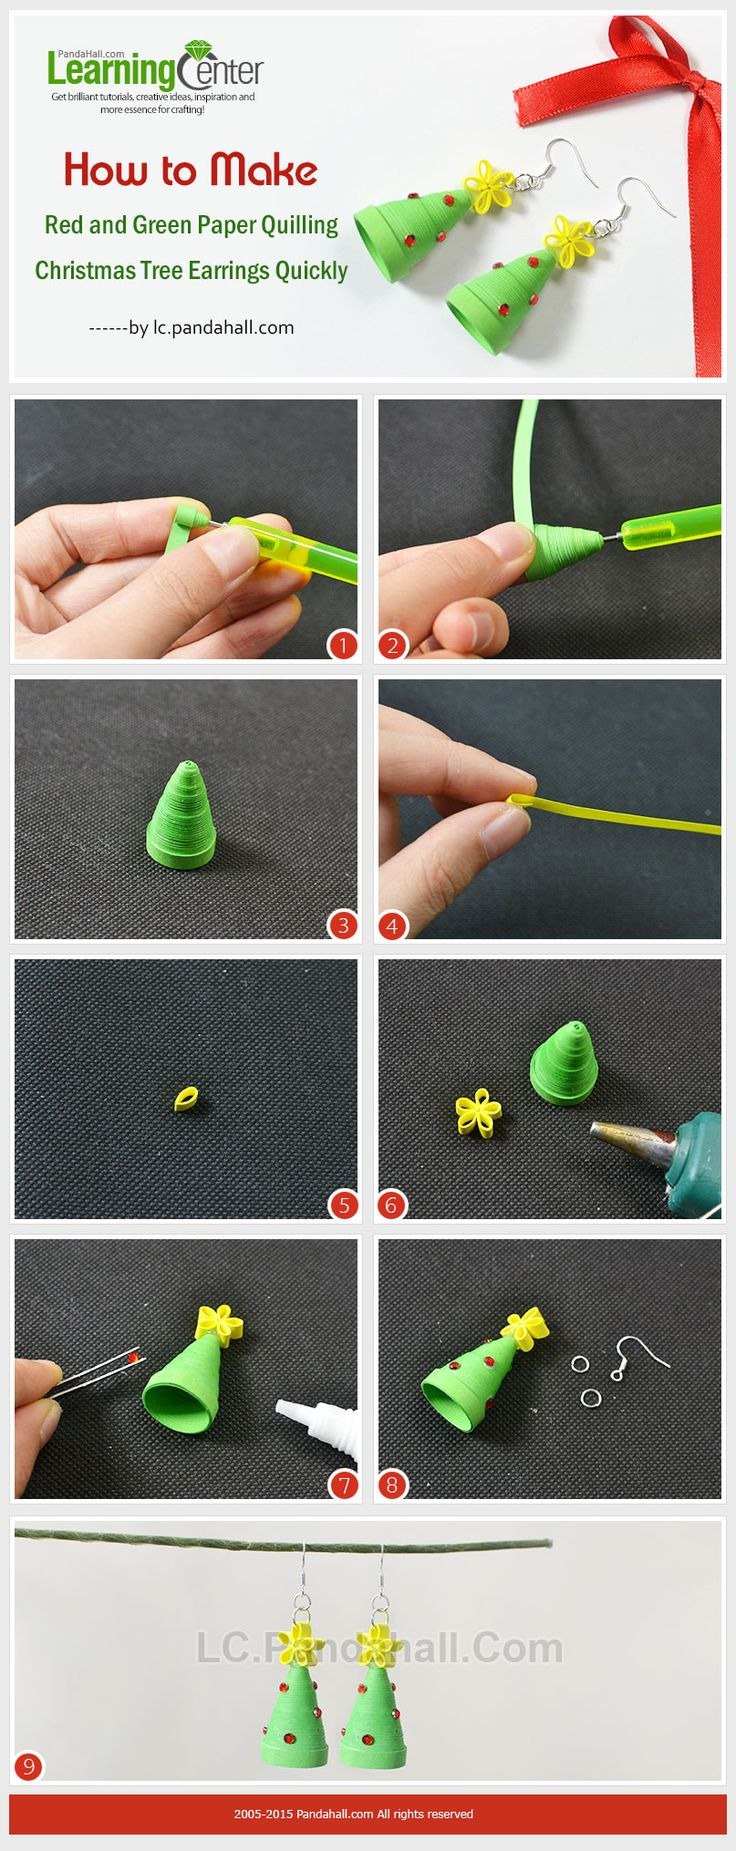 How-to-Make-Red-and-Green-Paper-Quilling-Christmas-Tree-Earrings-Quickly